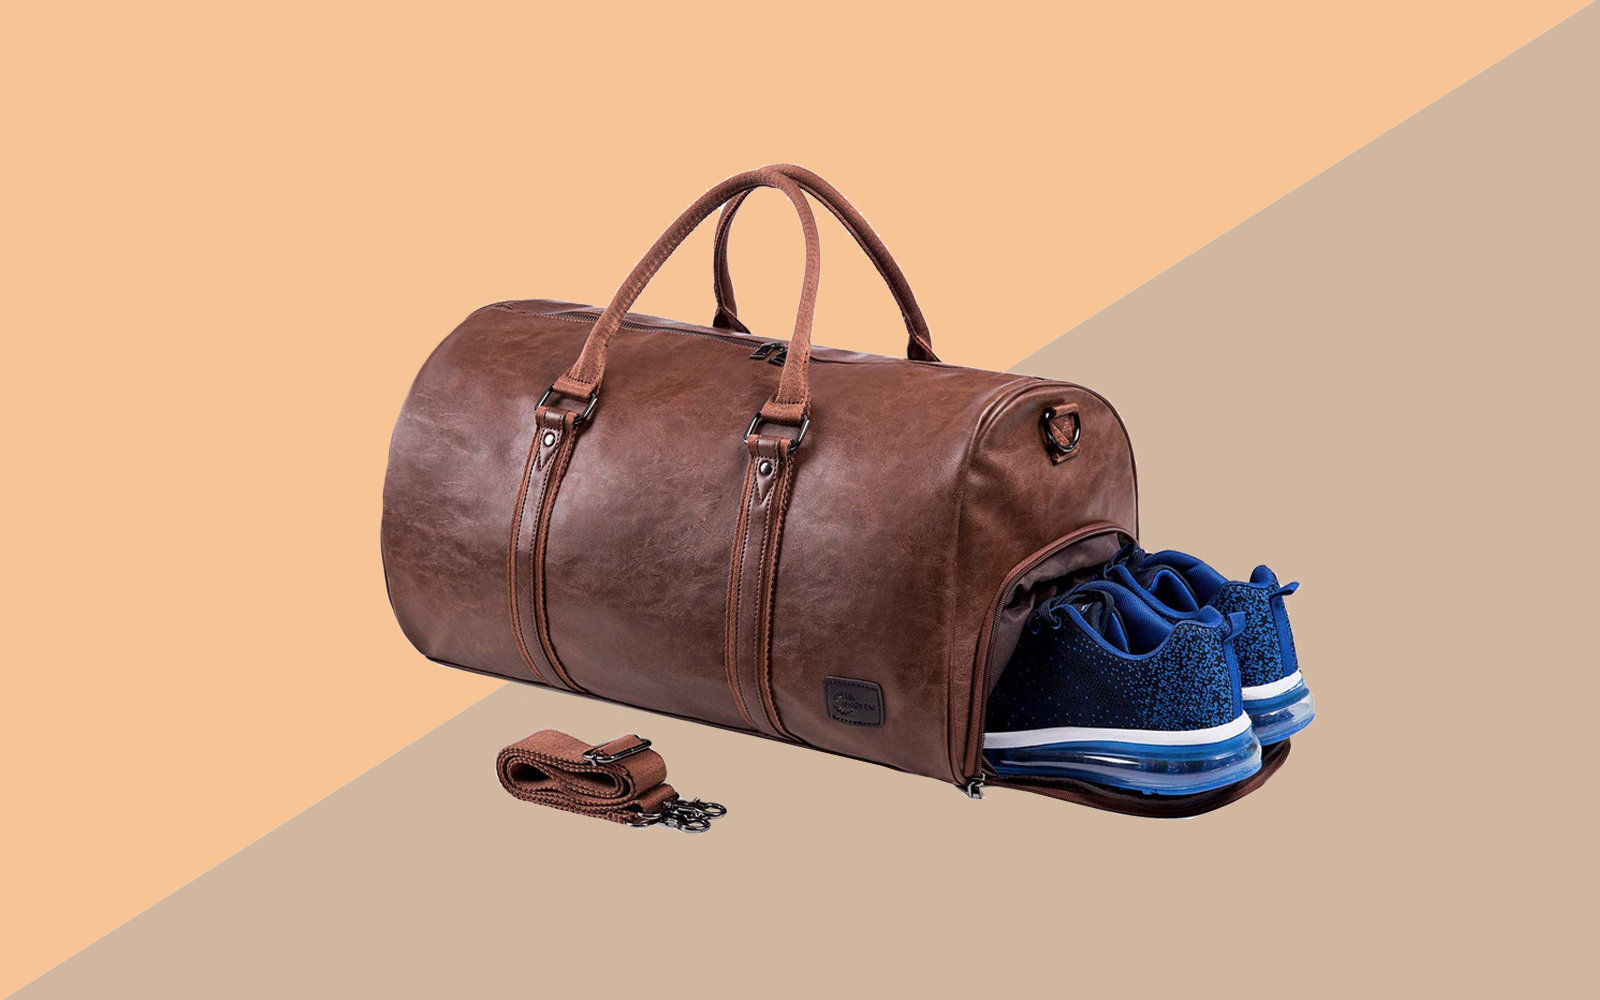 Amazon Leather Travel Bag with Shoe Pouch Tout